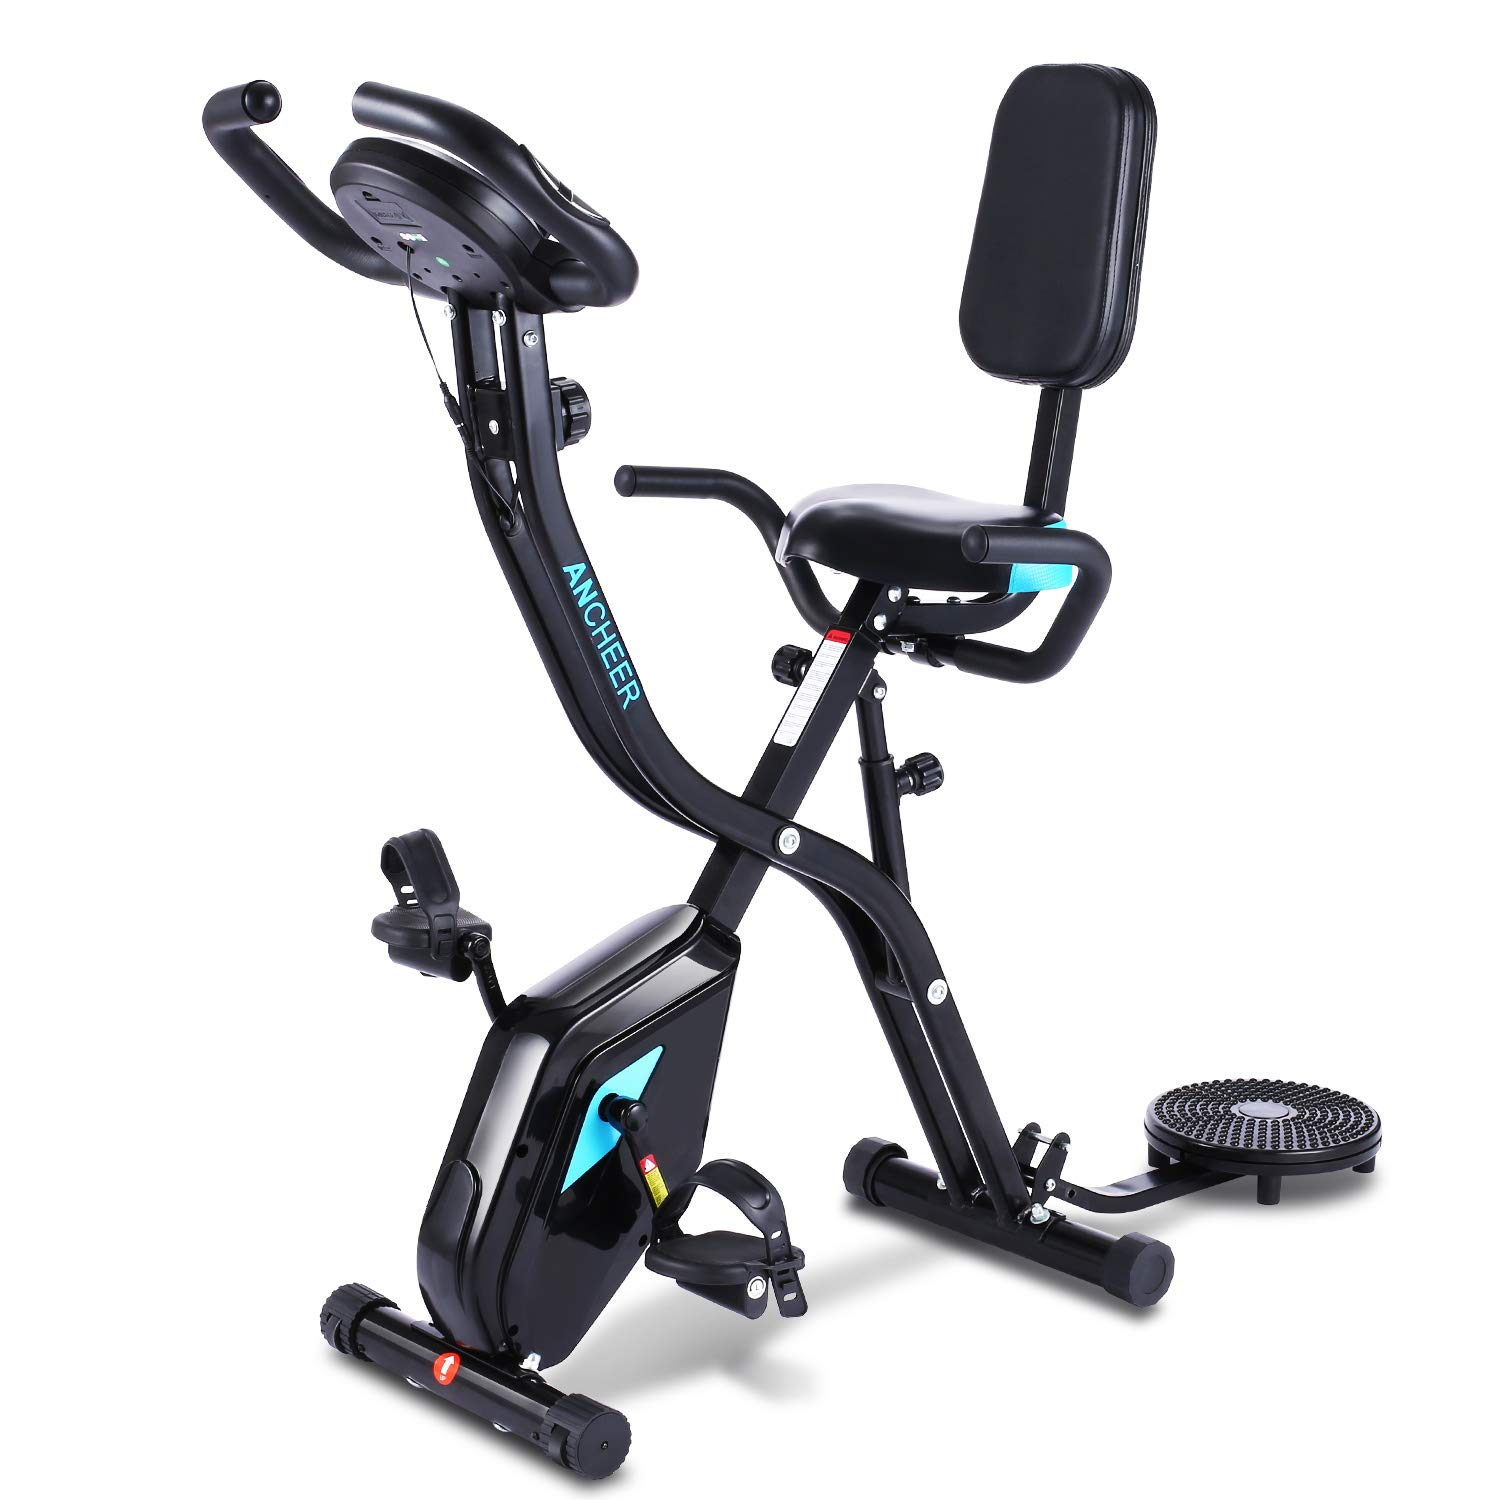 Ancheer Zafuar 3-in-1 Slim Cycle Exercise Bike